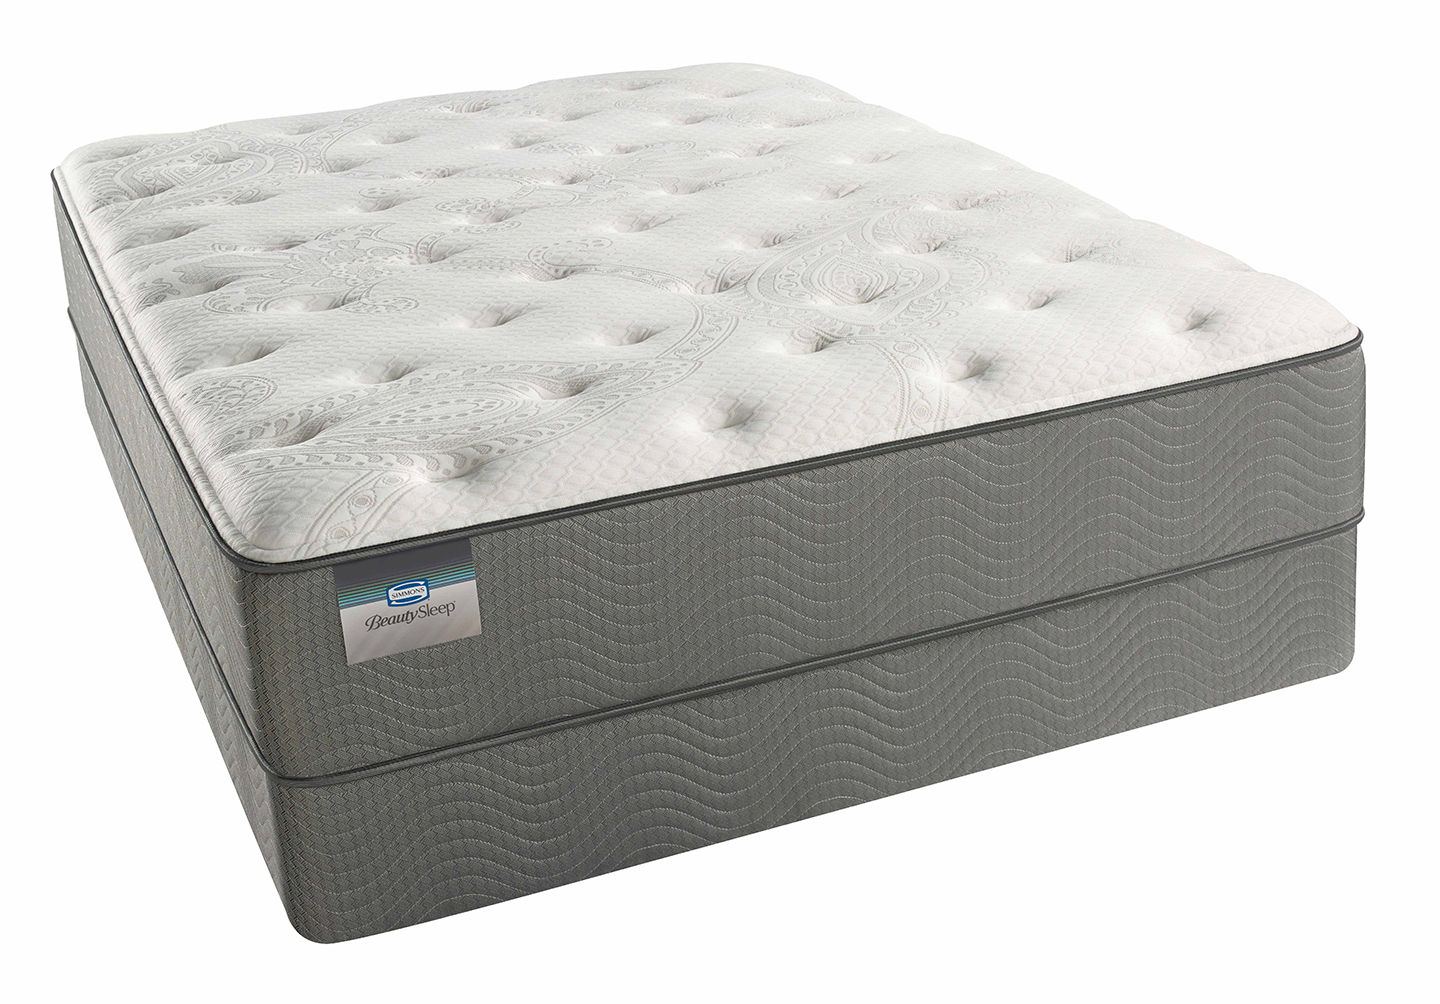 Archers Cay Tight Top Luxury Firm Mattress Awfco Catalog